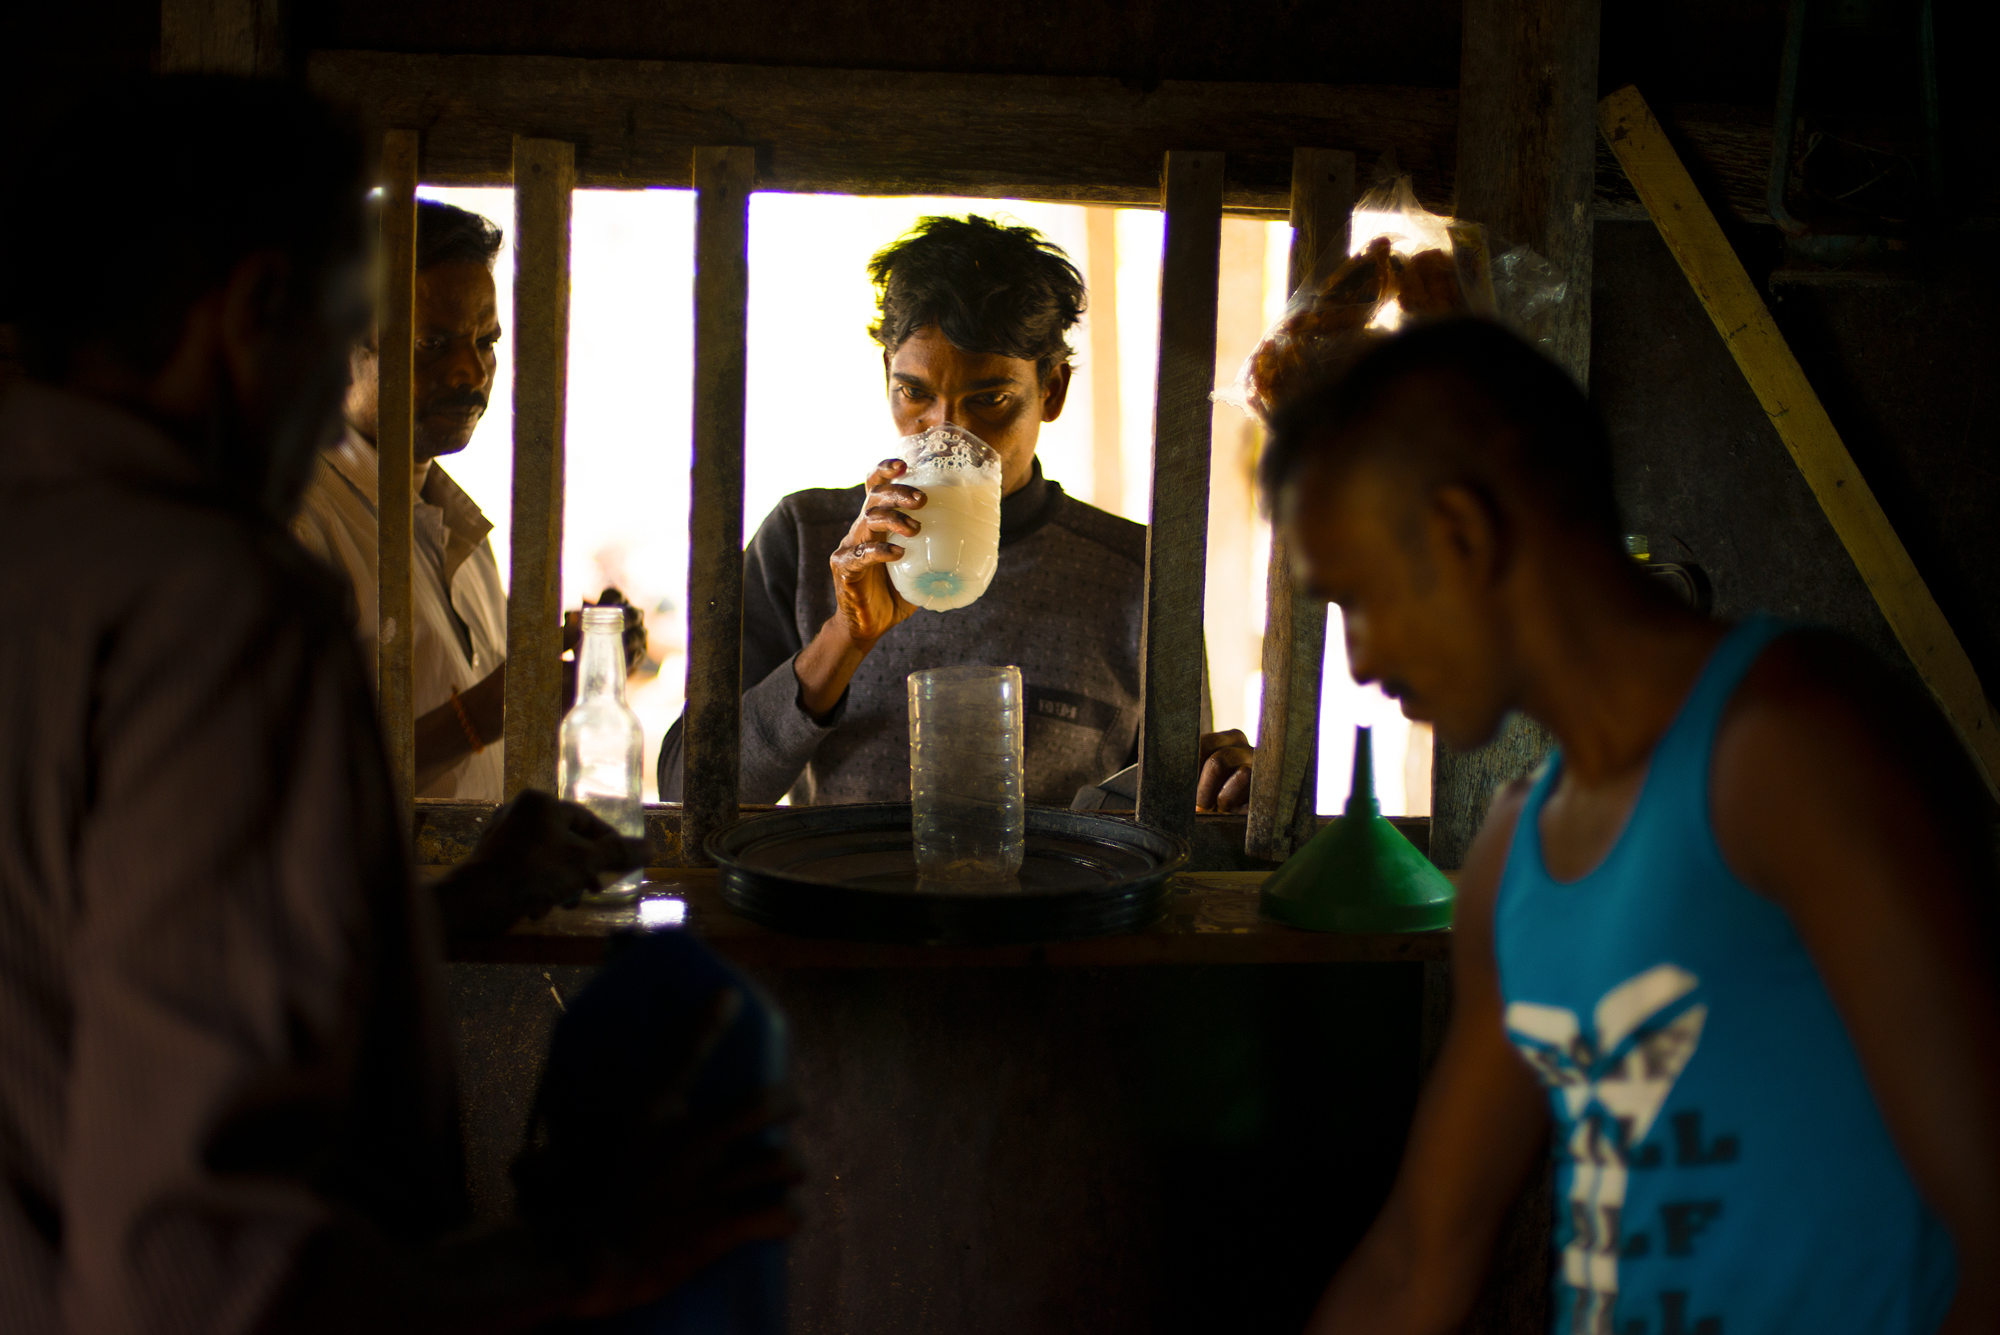 Villagers bring their own containers to the taverns, paying around 90 rupees (€0.60) per glass.